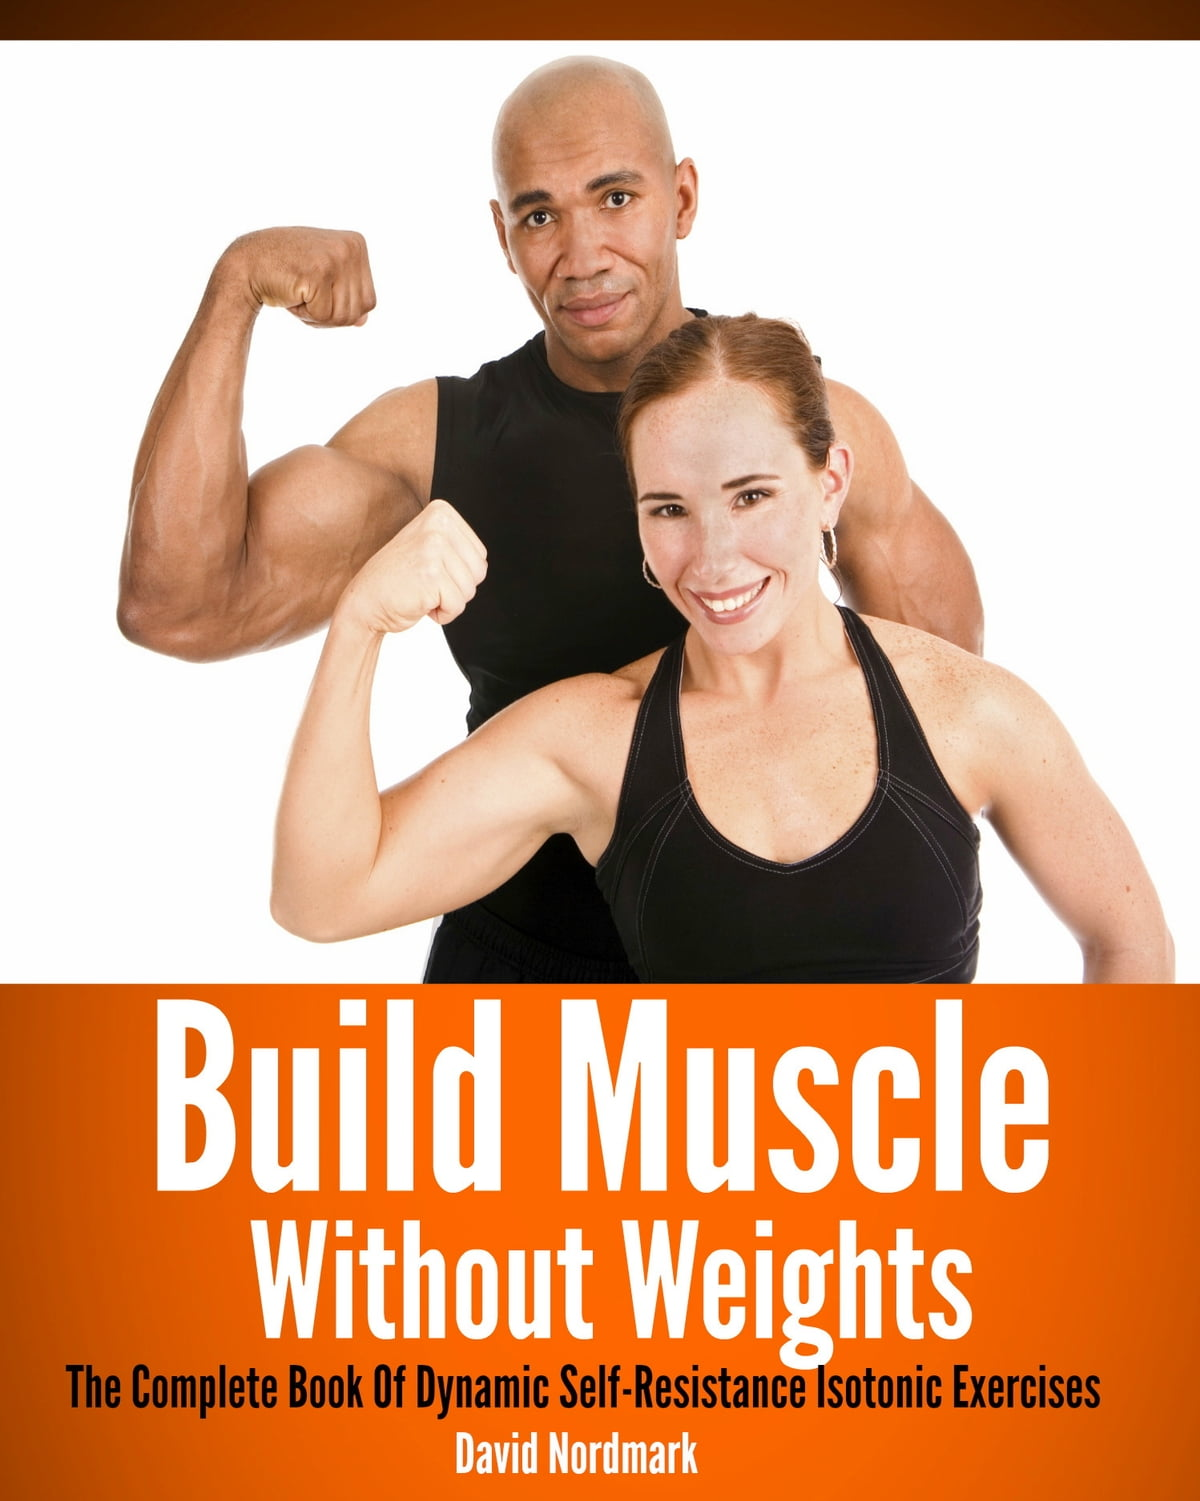 Build Muscle Without Weights: The Complete Book Of Dynamic Self-Resistance  Isotonic Exercises ebook by David Nordmark - Rakuten Kobo